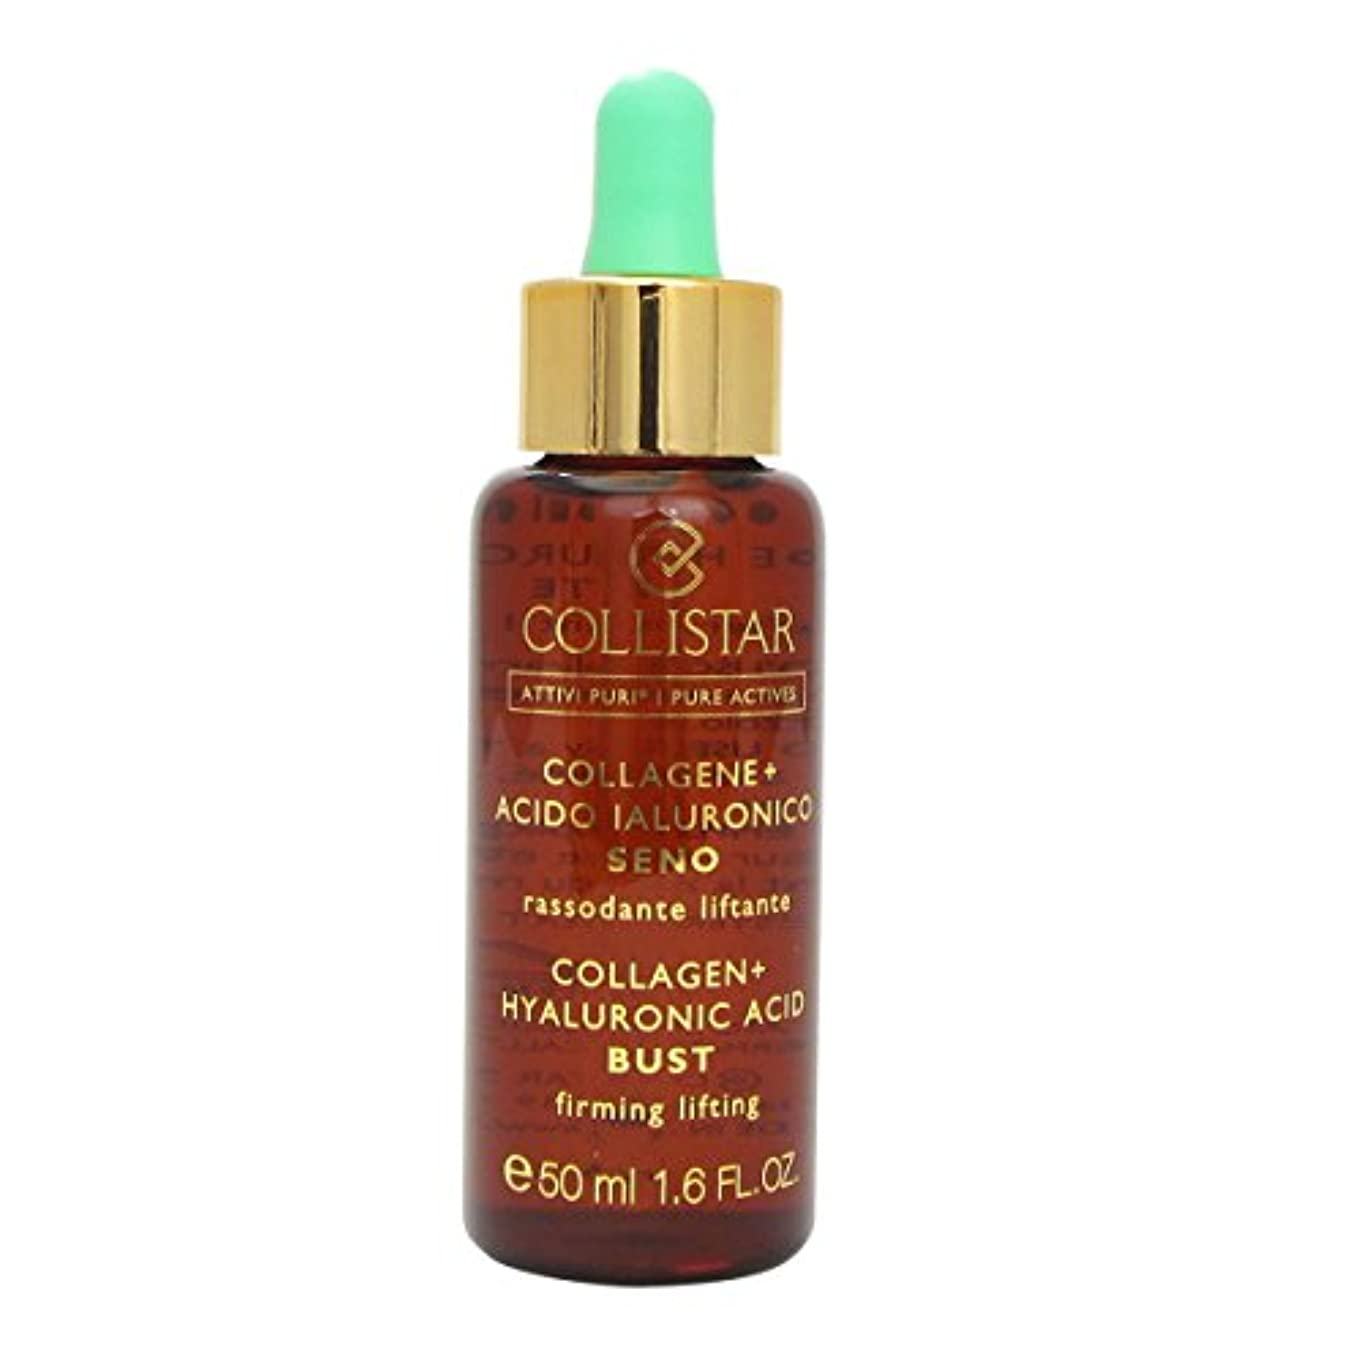 Collistar Bust Collagen + Hyaluronic Acid 50ml [並行輸入品]